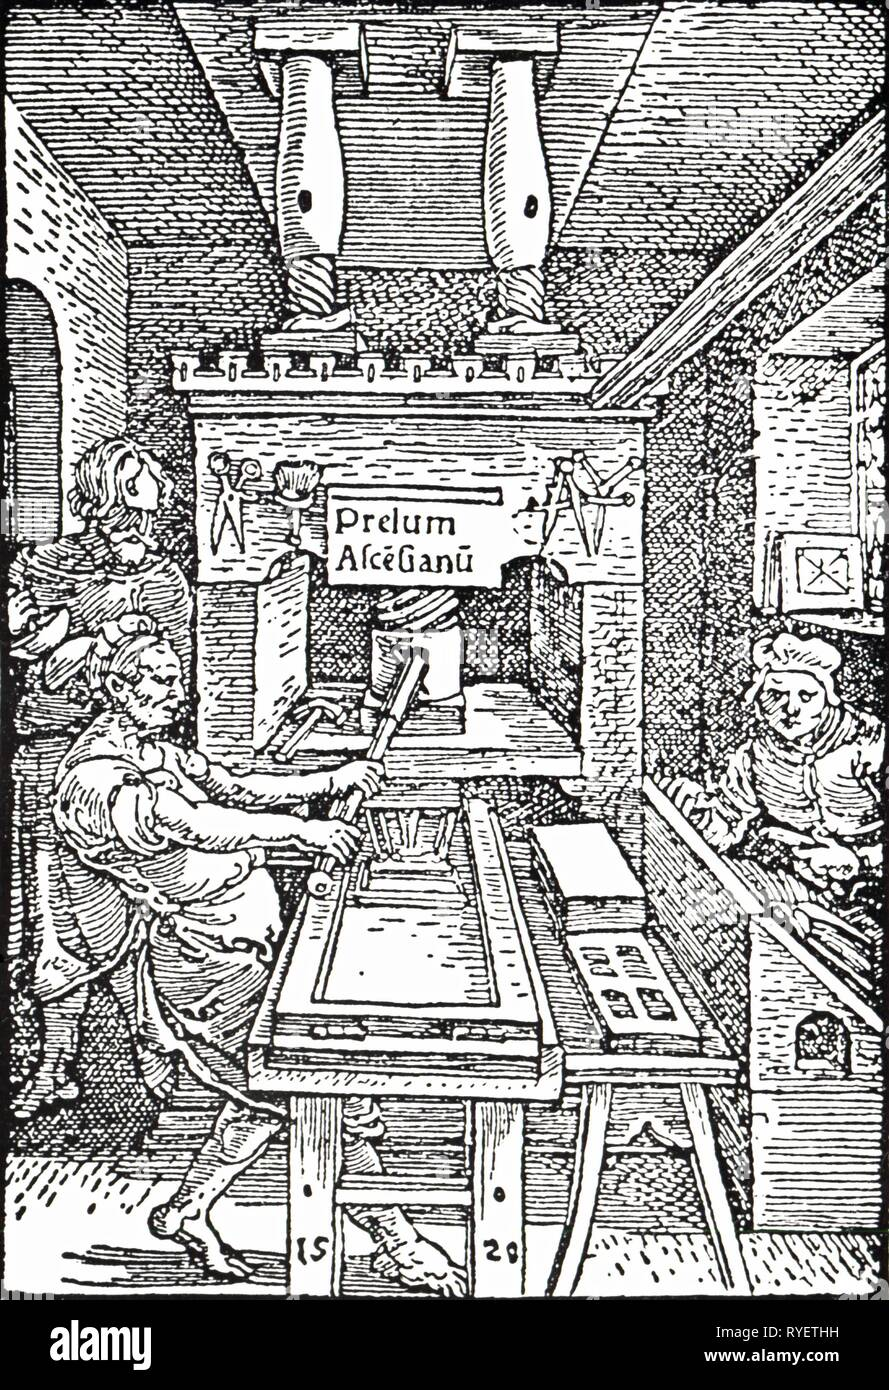 technics, typography, print shop, woodcut.emblem of Jodocus Badius, Paris, 1520, Additional-Rights-Clearance-Info-Not-Available - Stock Image